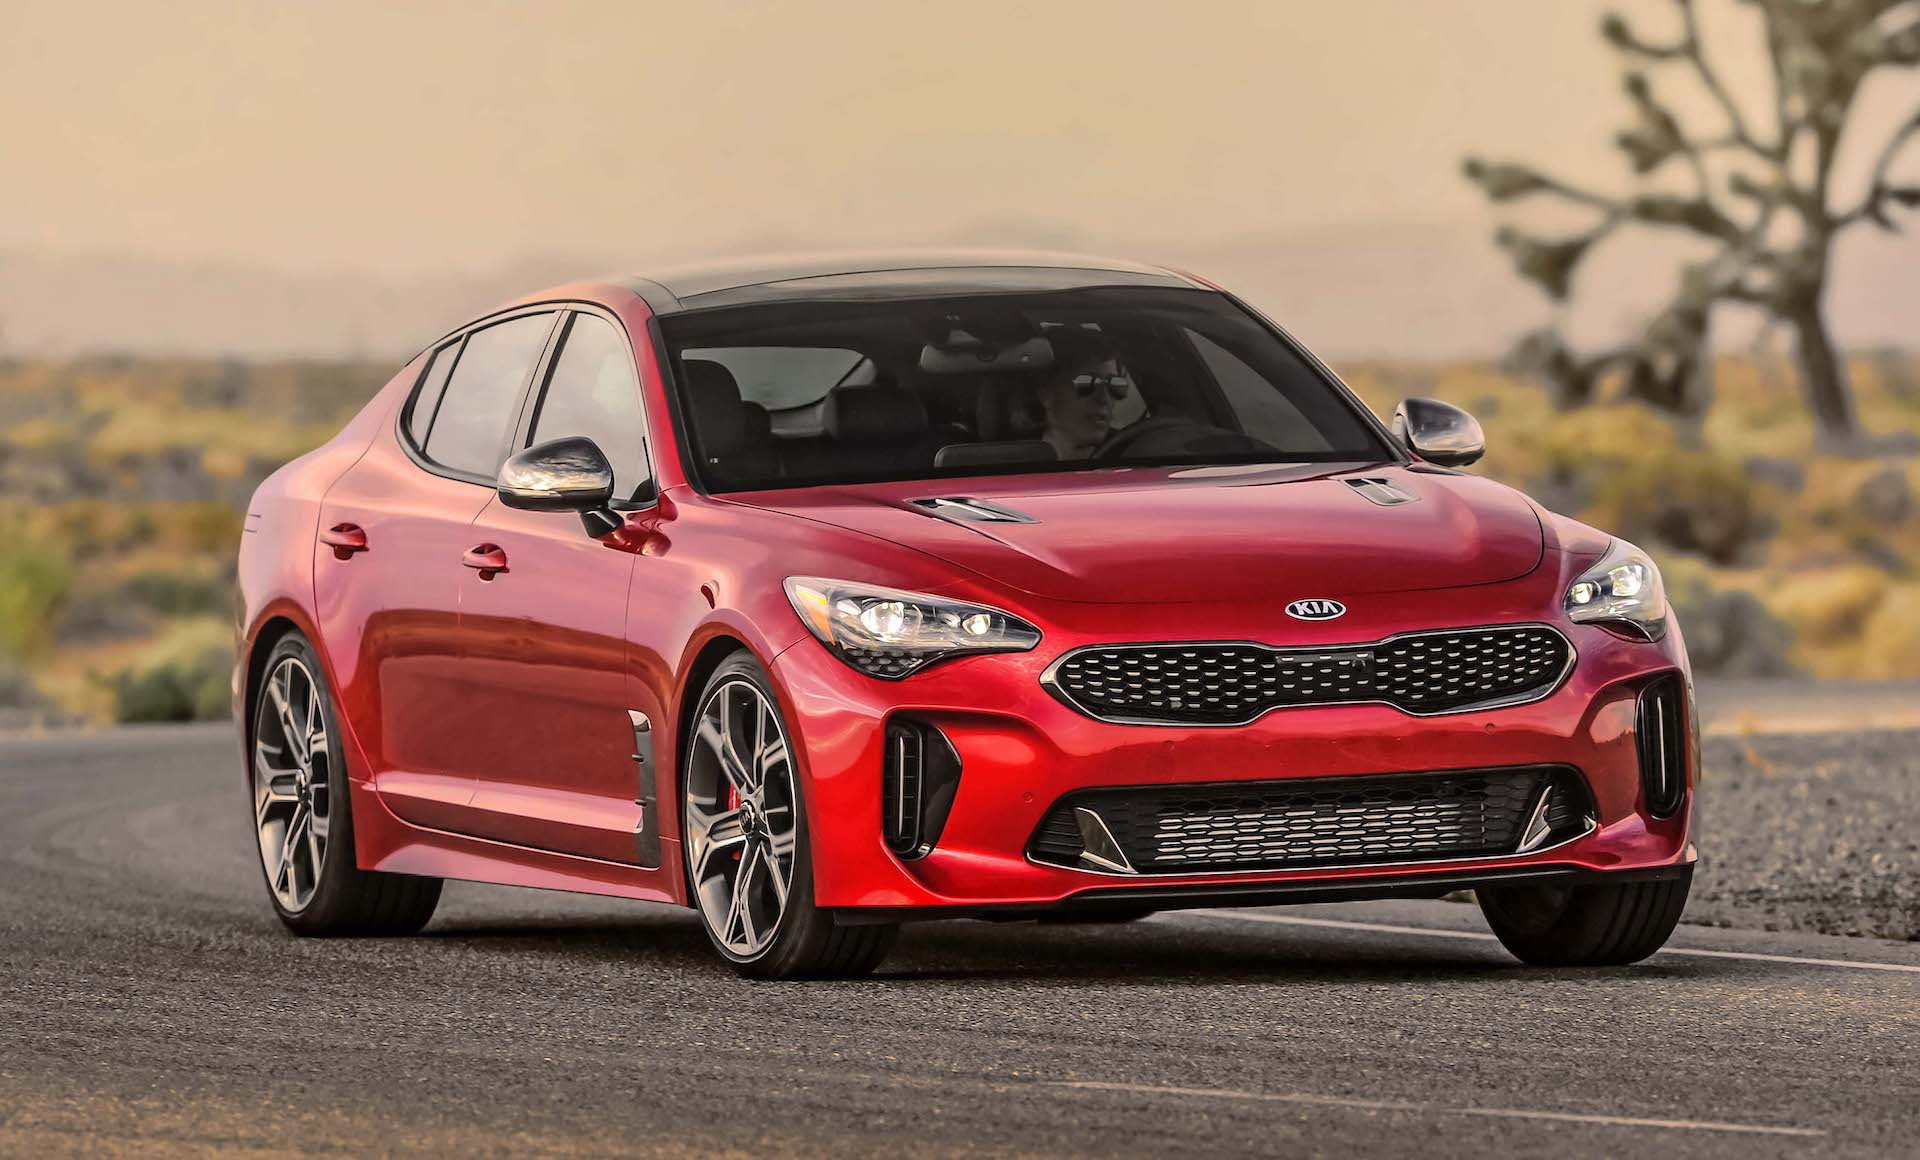 New And Used Kia Stinger Prices Photos Reviews Specs The Car Connection